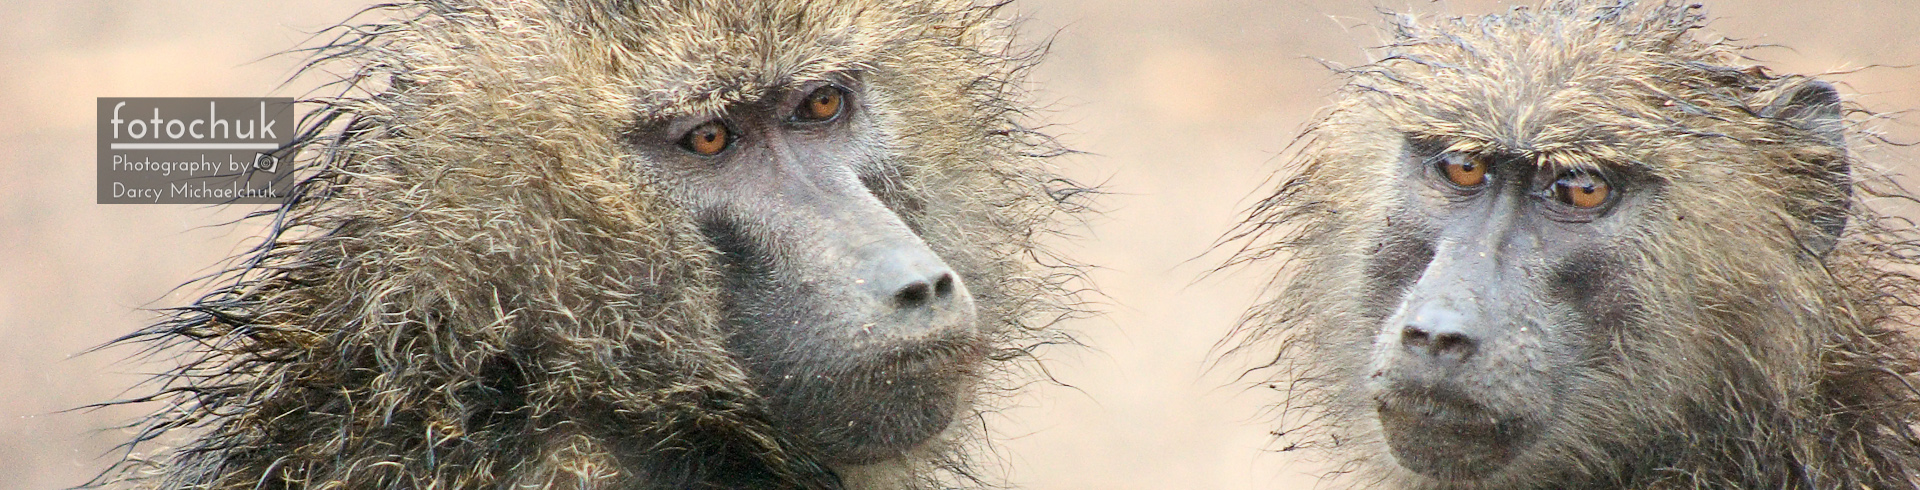 Wet Baboons, Panoramic